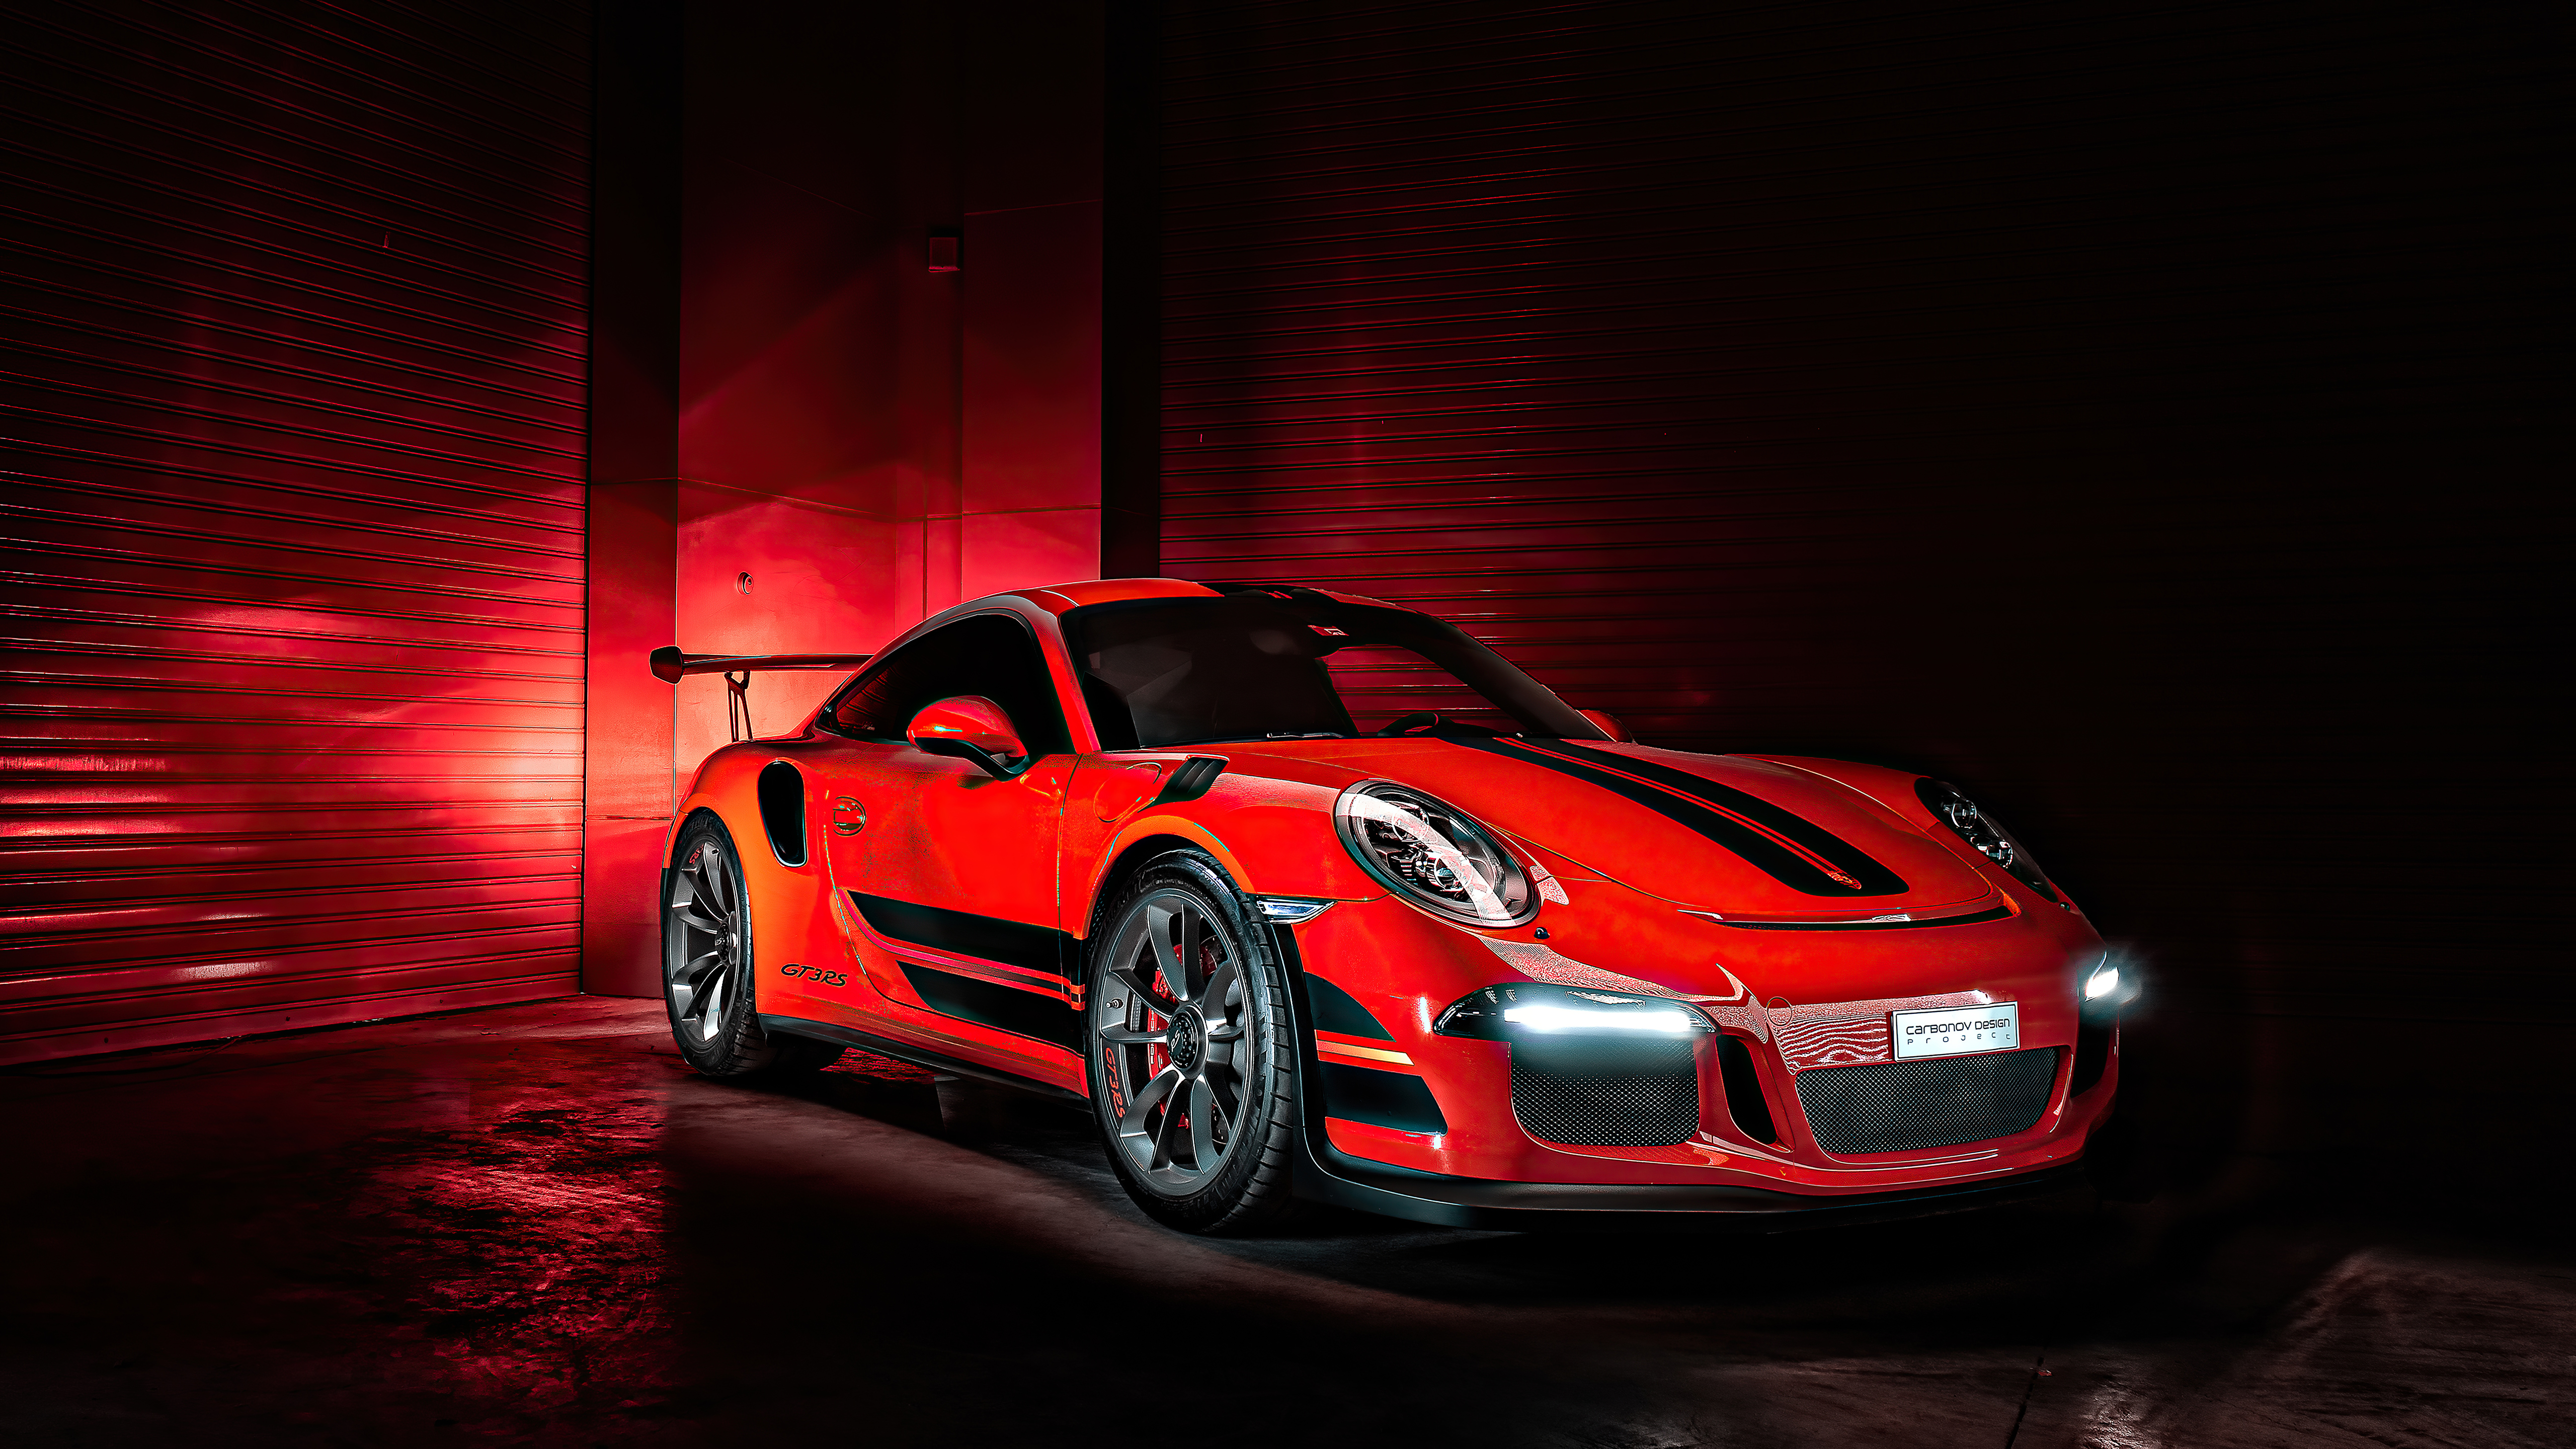 porsche gt3rs red 4k 1618921613 1 - Porsche GT3RS Red 4k - Porsche GT3RS Red 4k wallpapers